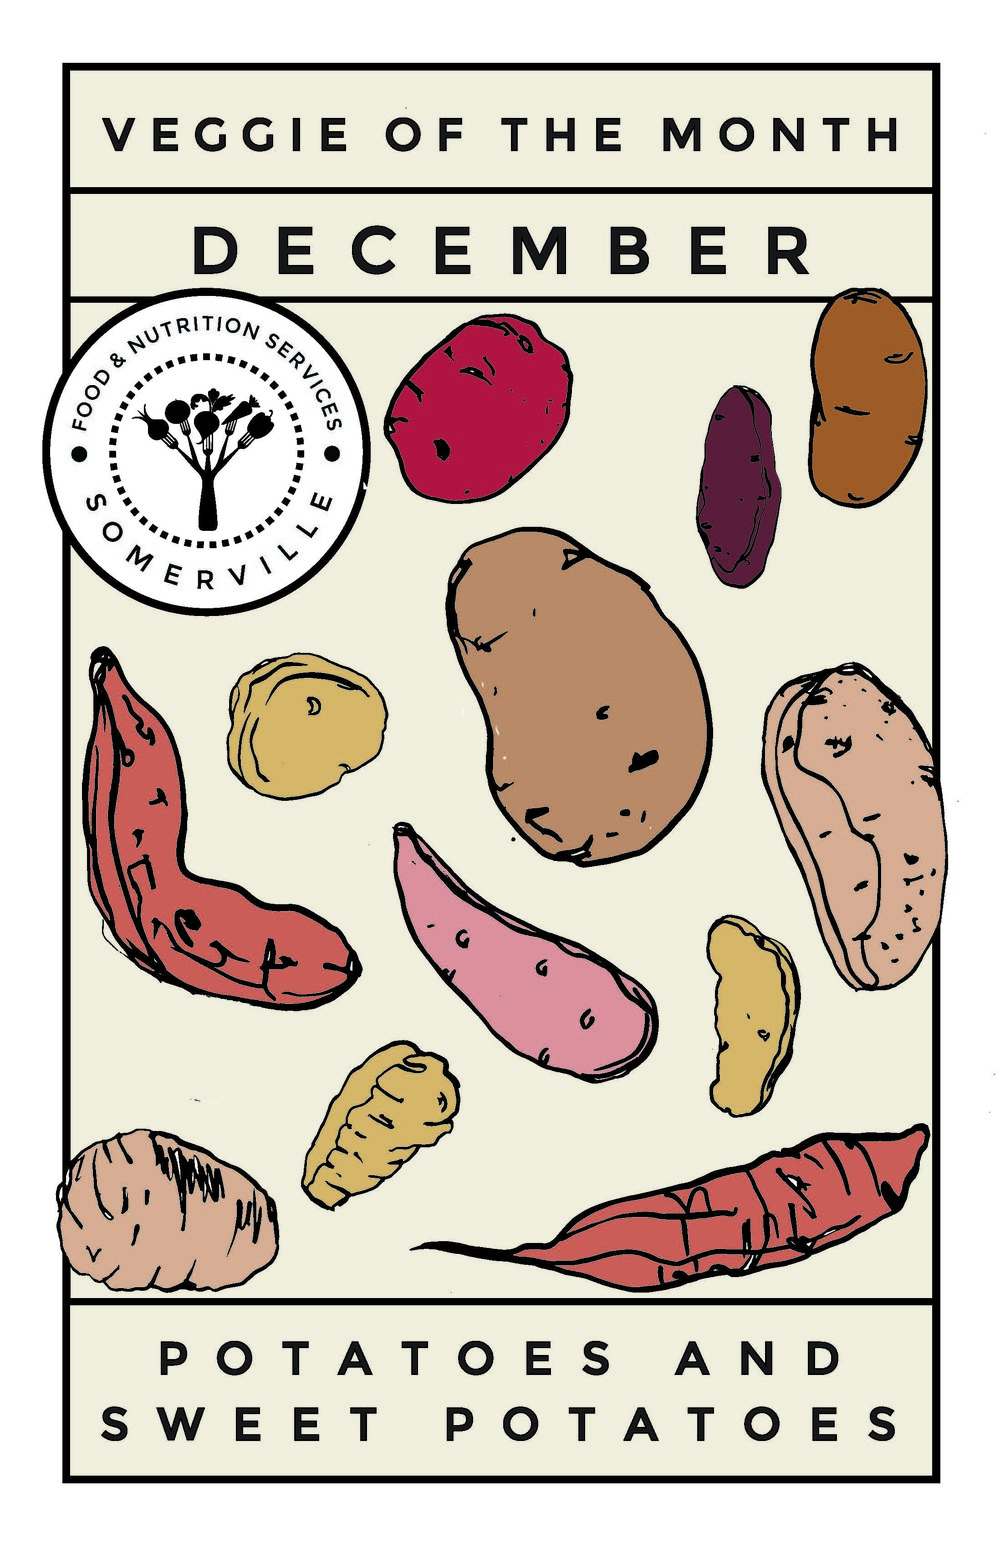 Original Designs for Somerville Farm to School Program by Print Club Ltd. www.jointheprintclub.com